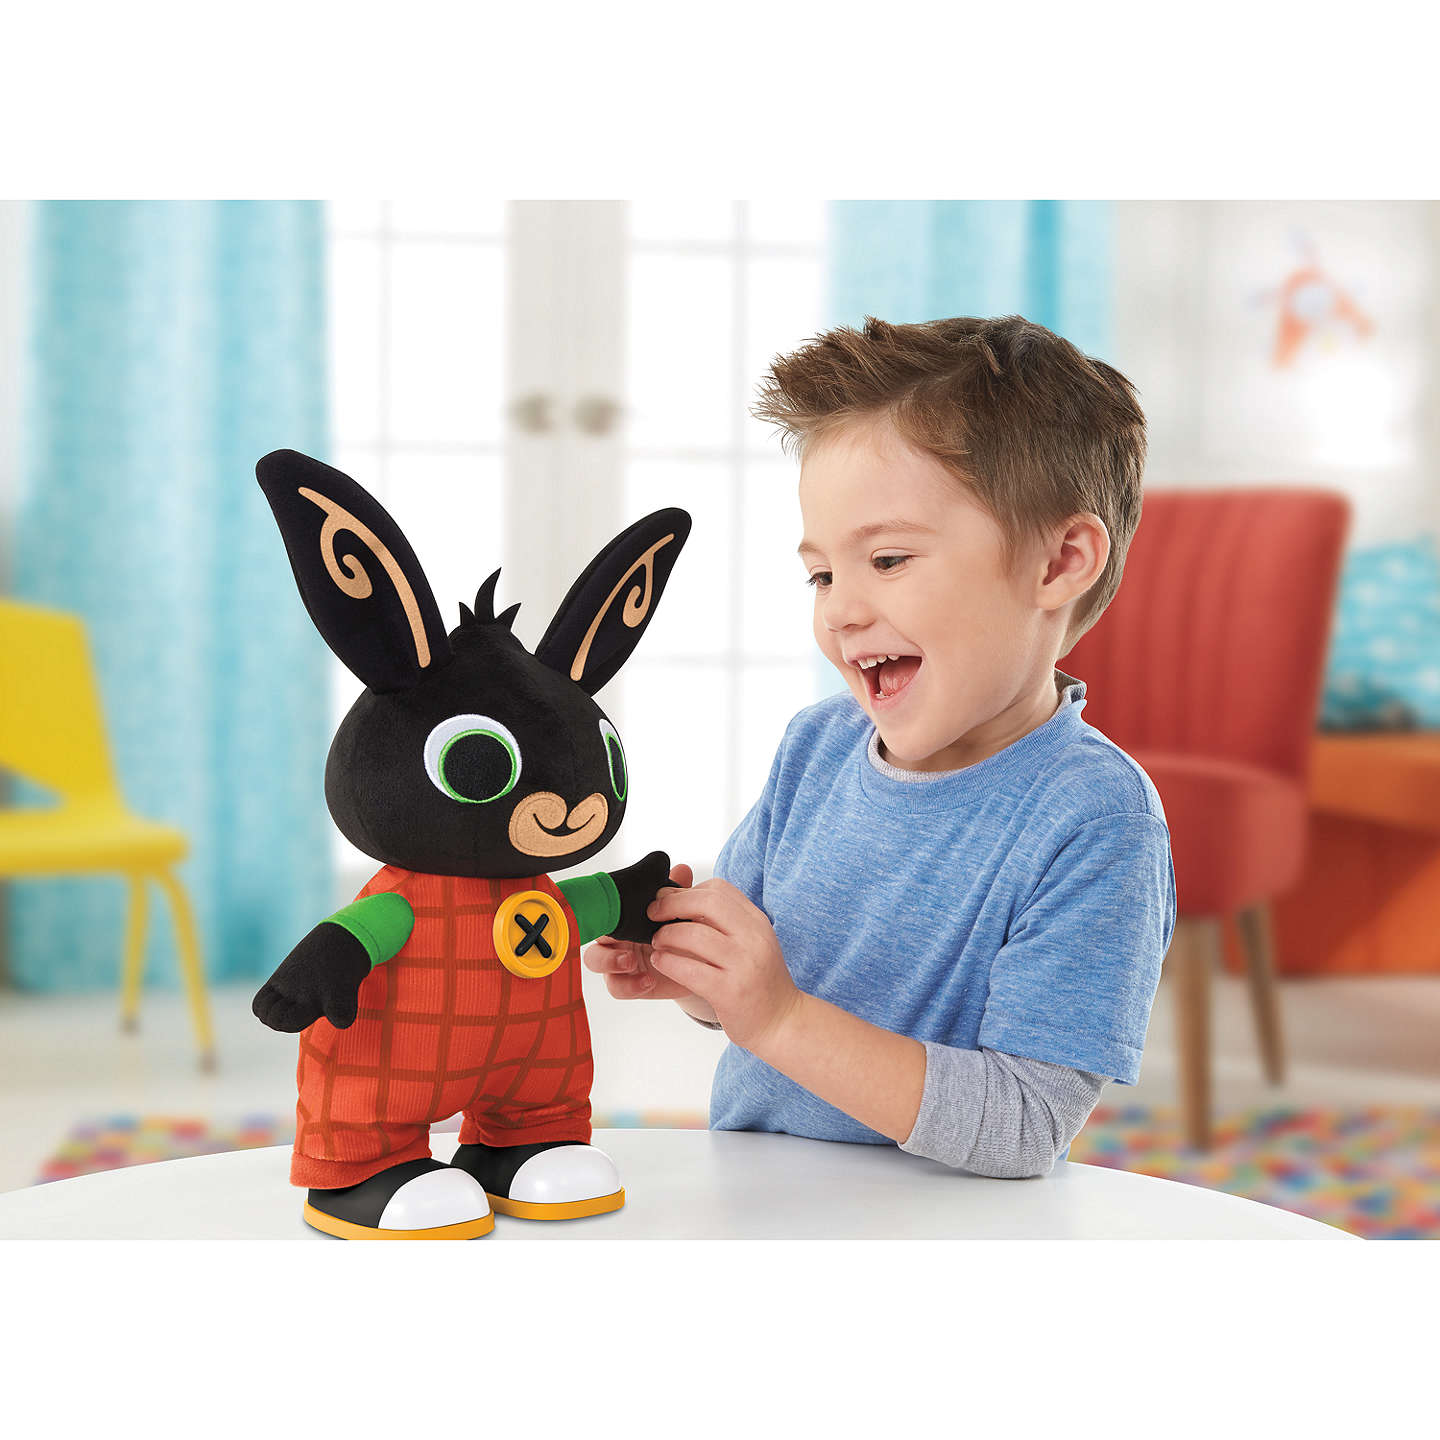 BuyBing Bunny My Friend Bing Toy Online at johnlewis.com